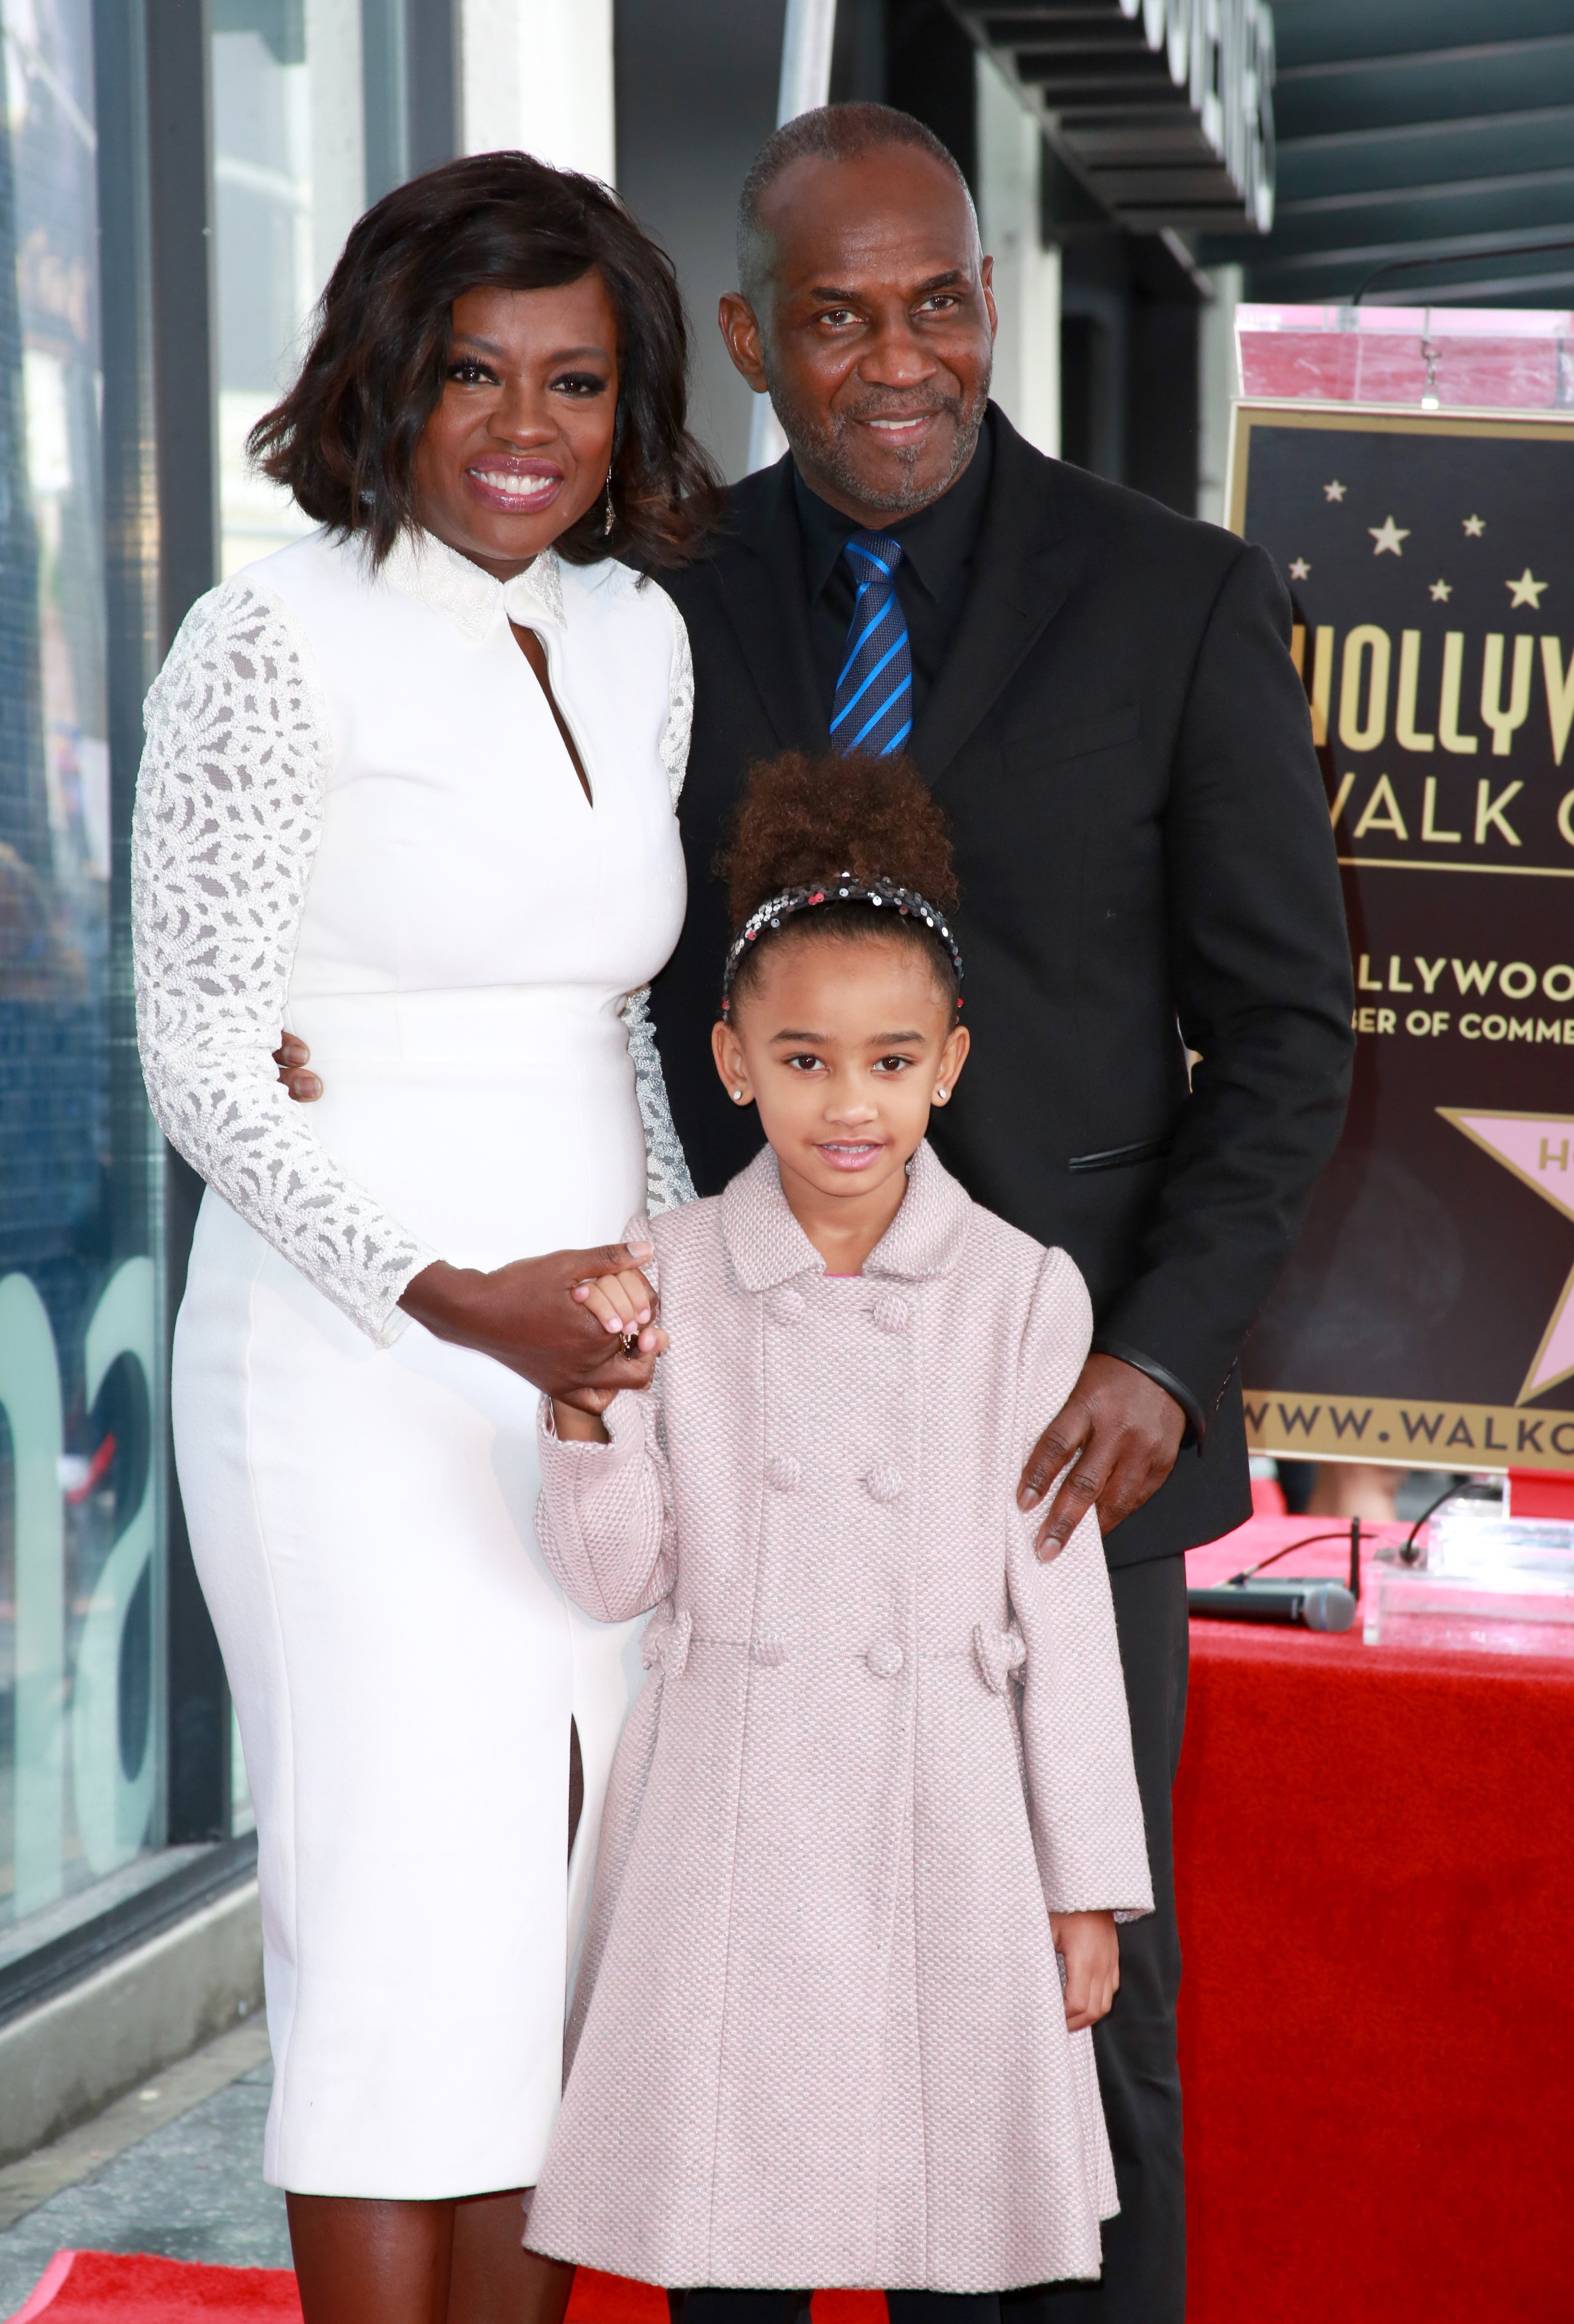 Actress Viola Davis, actor Julius Tennon and Genesis Tennon attend the Viola Davis Walk Of Fame Ceremony at Hollywood Walk Of Fame on January 5, 2017|Photo: Getty Images